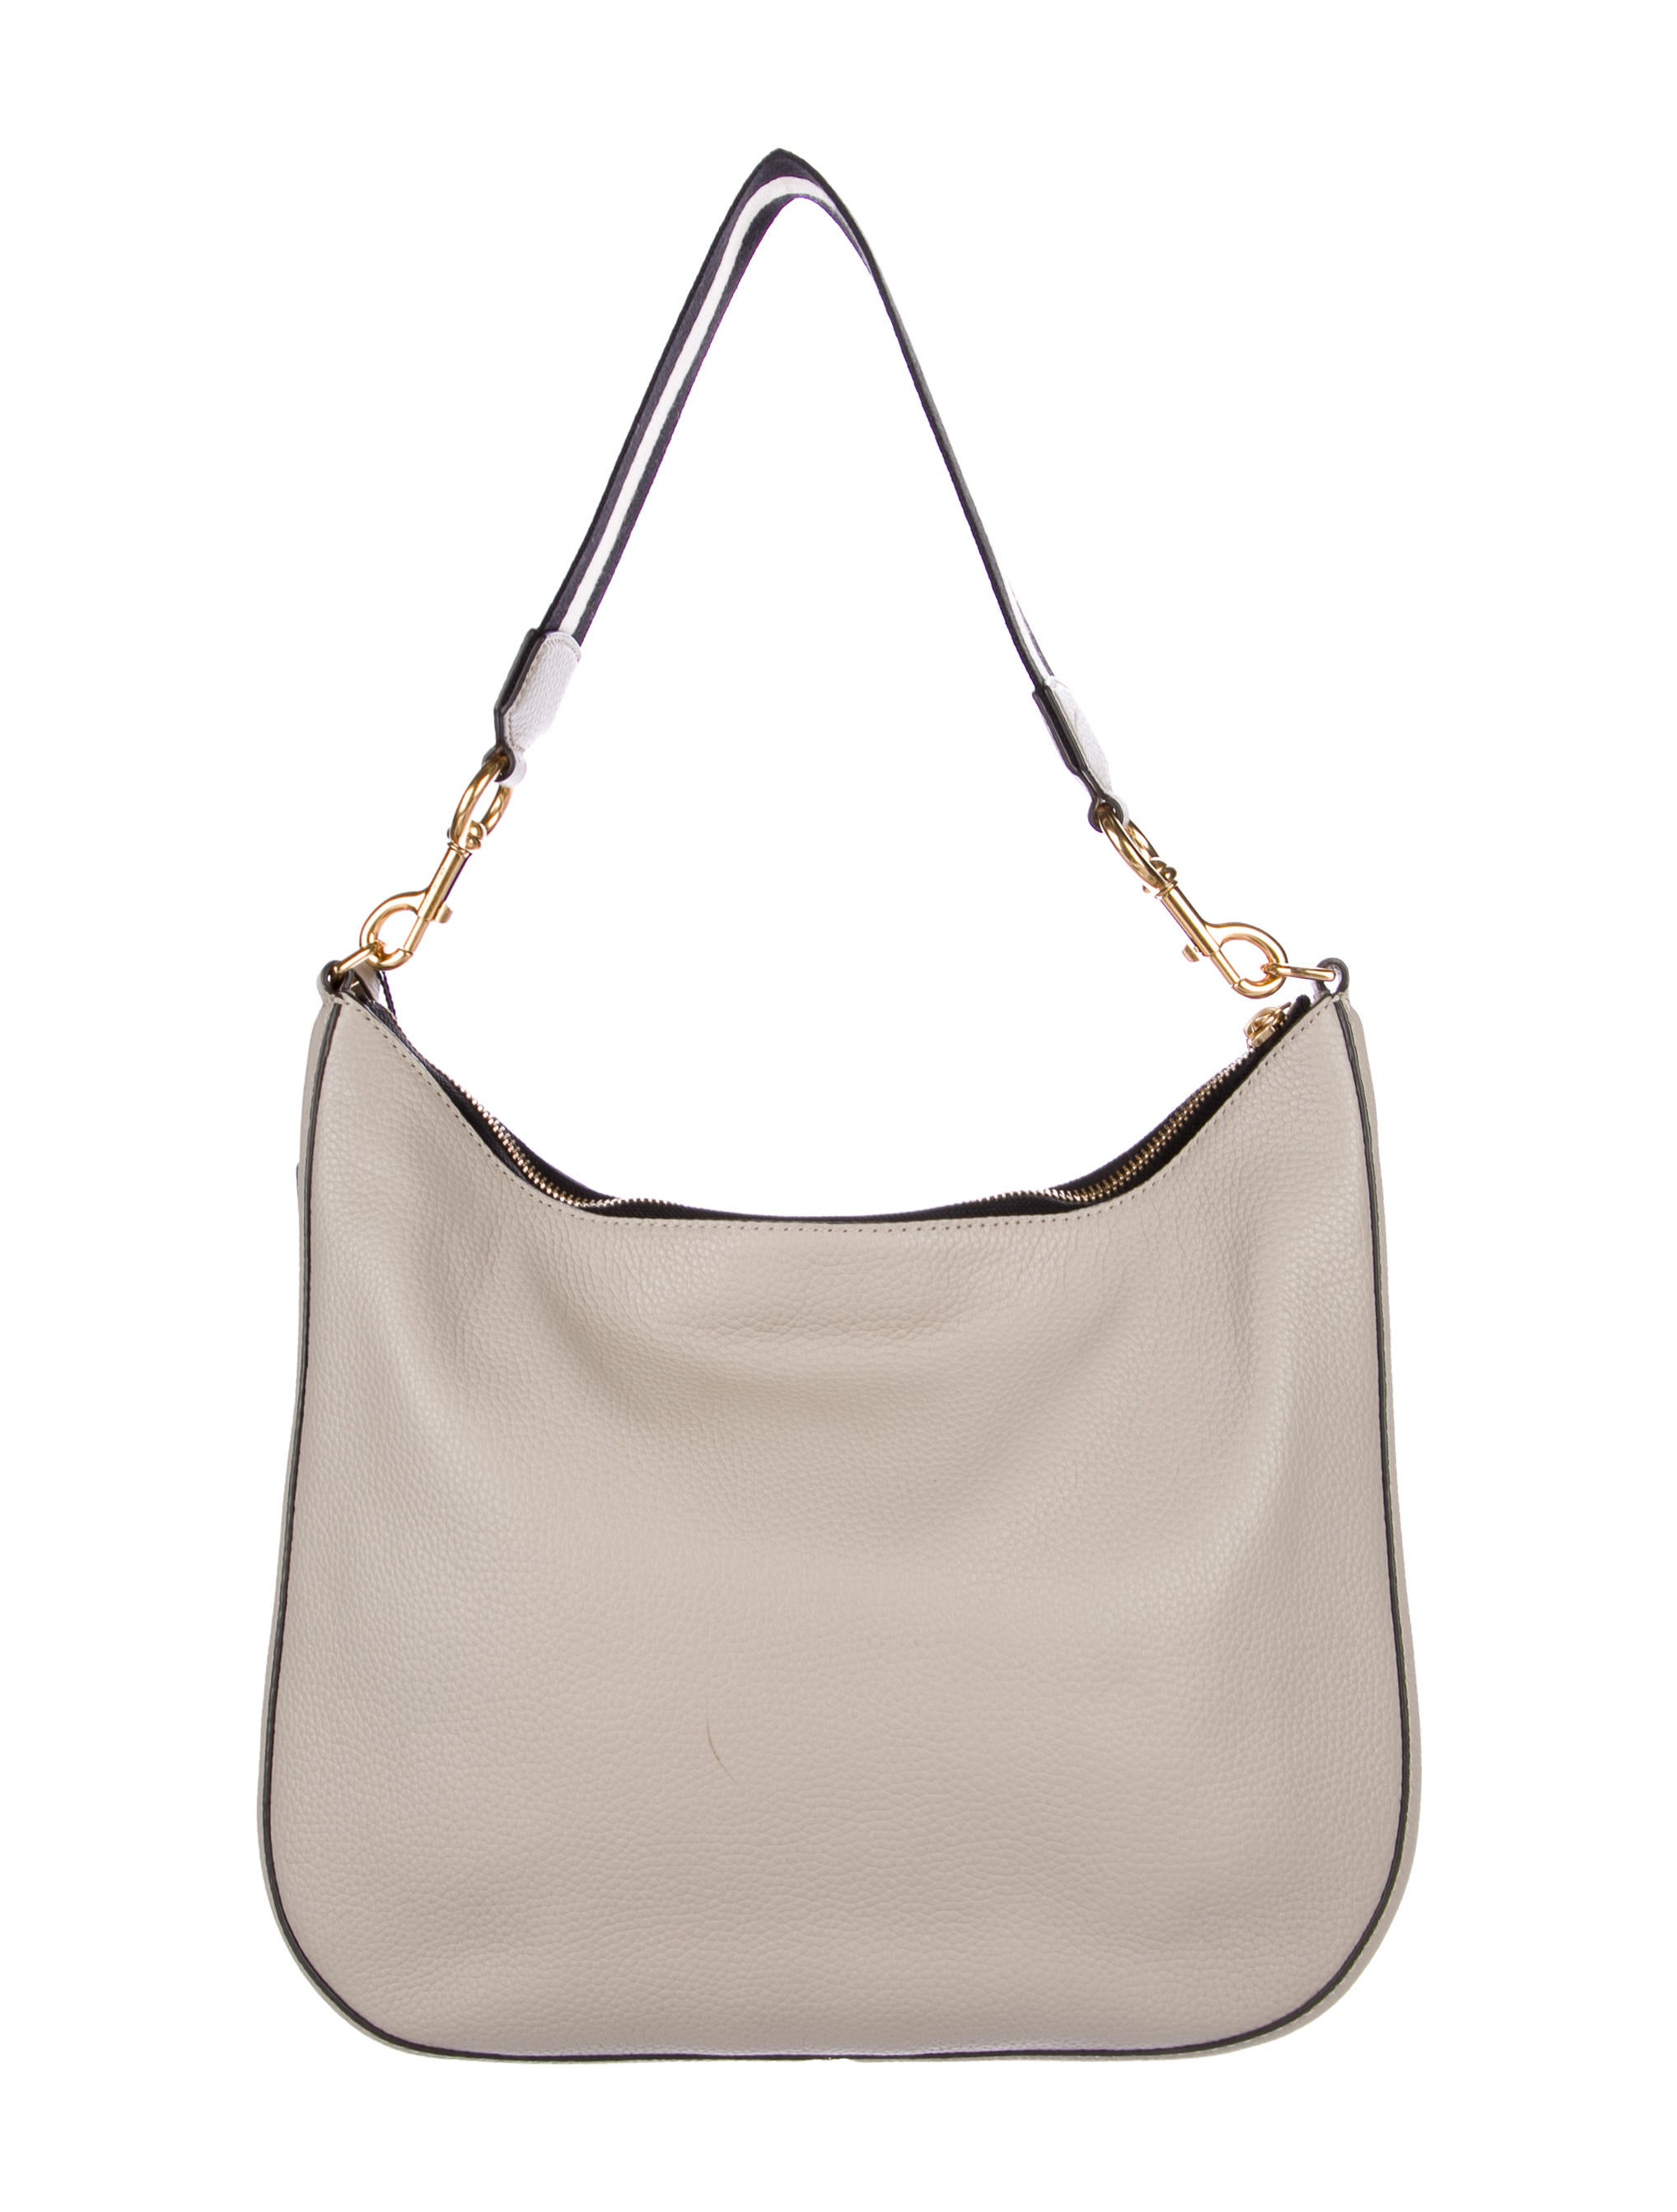 Marc by Marc Jacobs Leather Hobo Handbags MAR49651  : MAR496514enlarged from www.therealreal.com size 2036 x 2685 jpeg 234kB